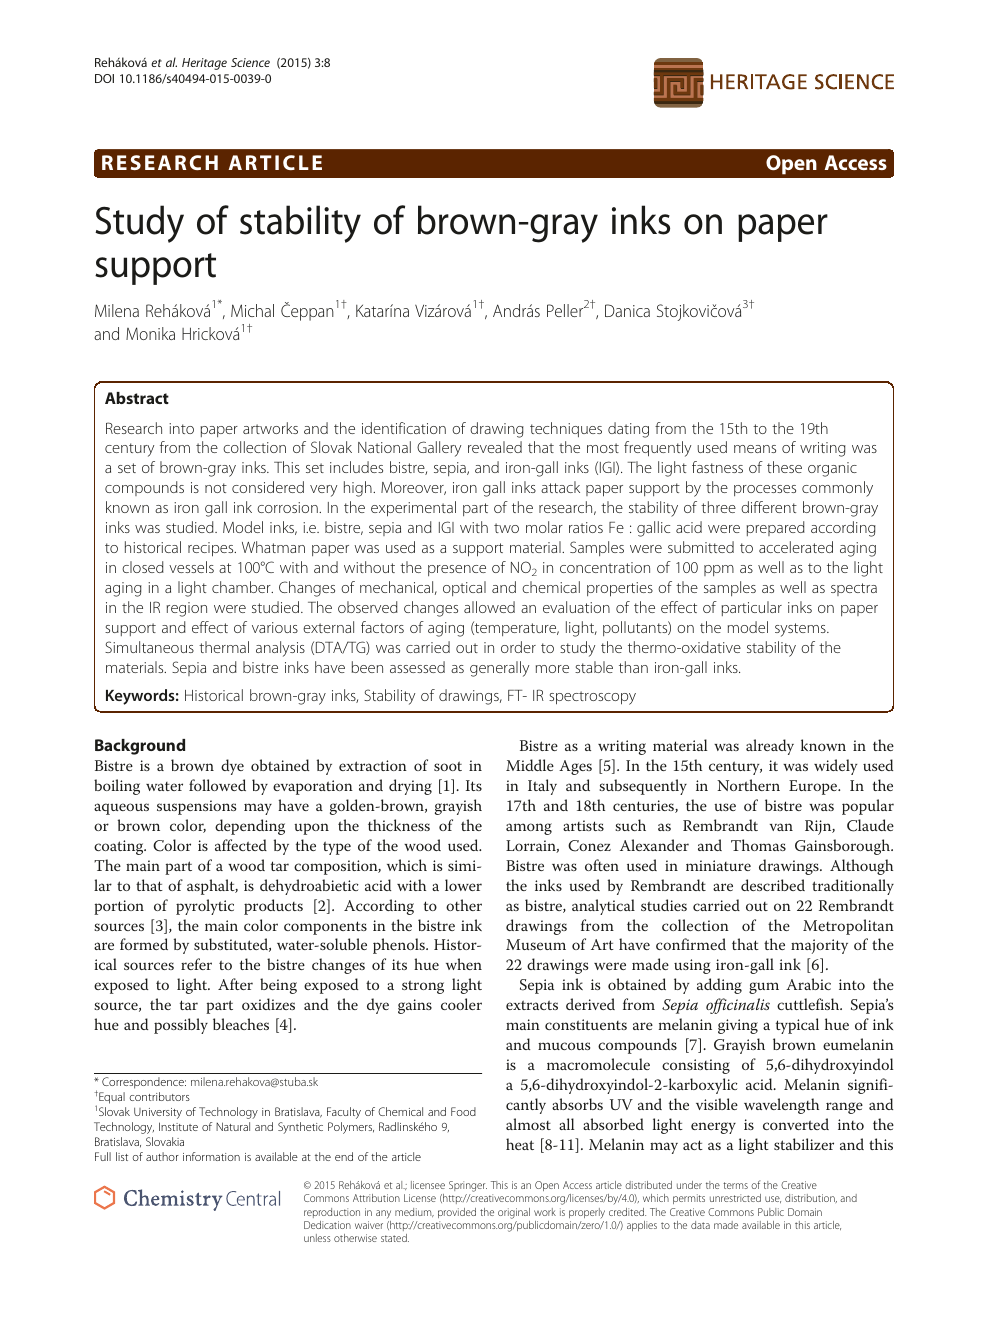 Study of stability of brown-gray inks on paper support